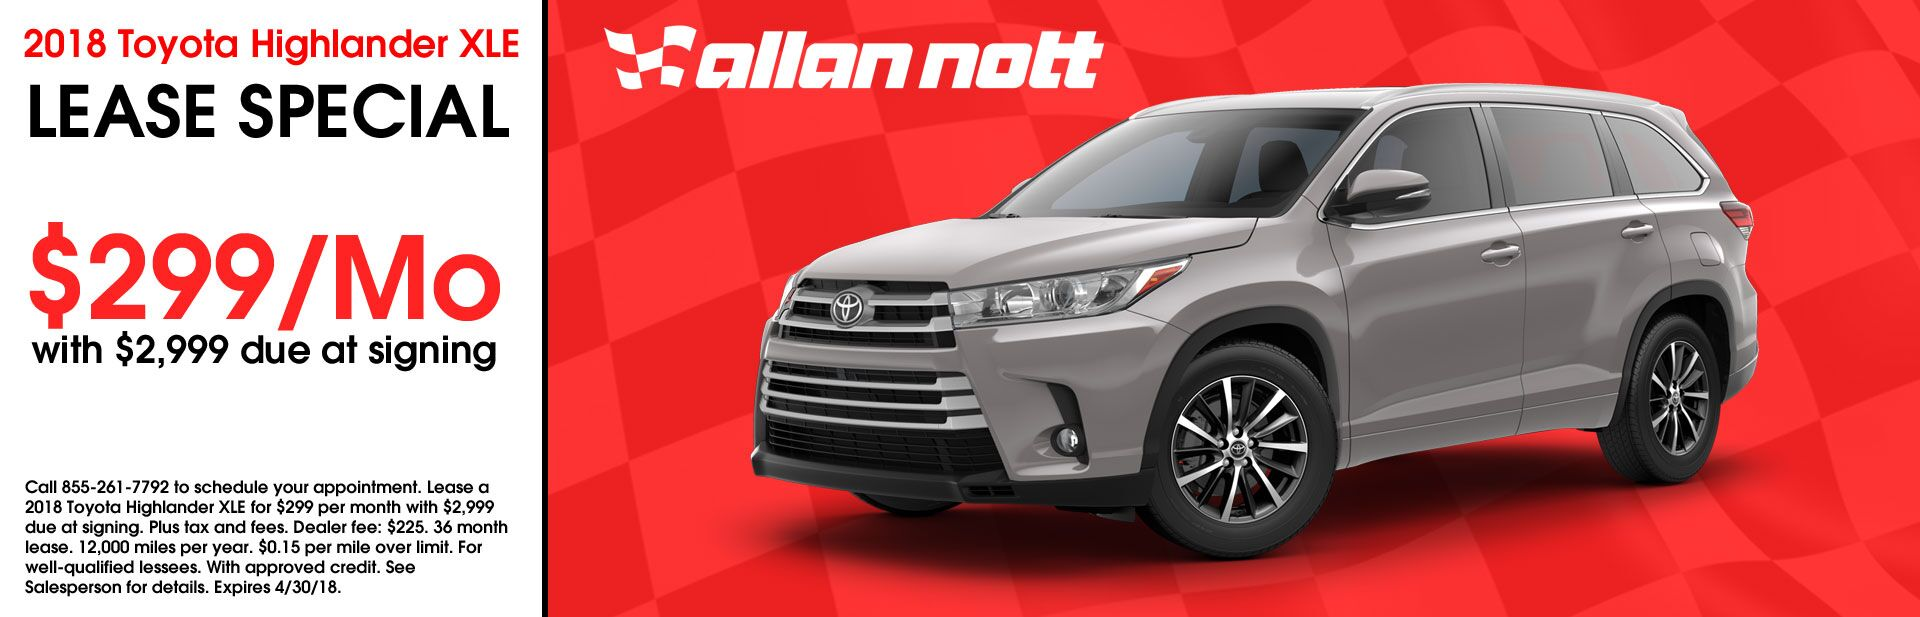 April 2018 - 2018 Toyota Highlander XLE Lease Special